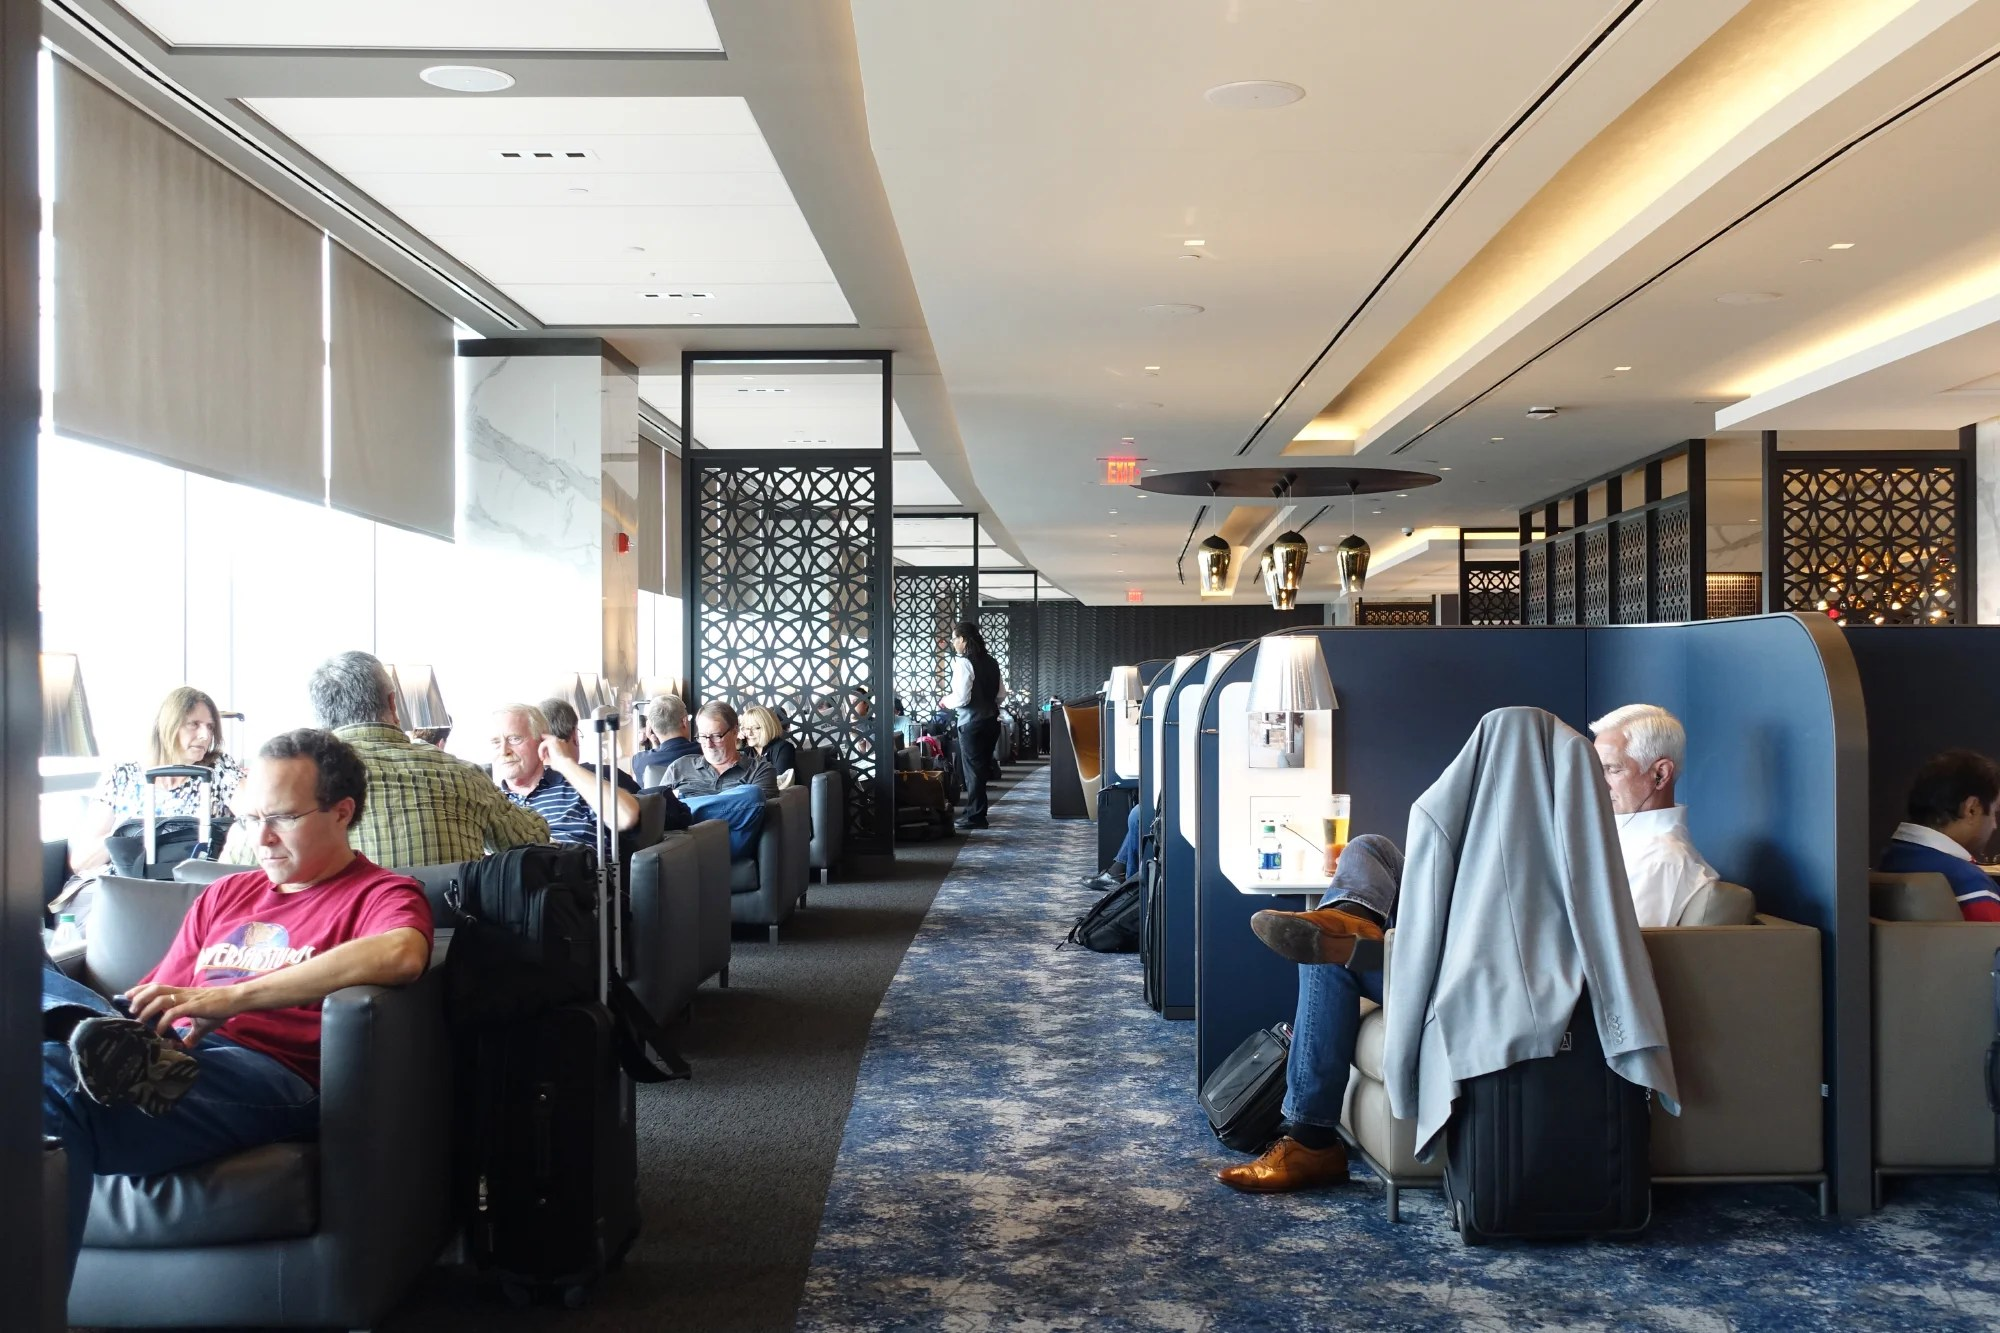 TPG readers' favorite airport lounges around the world